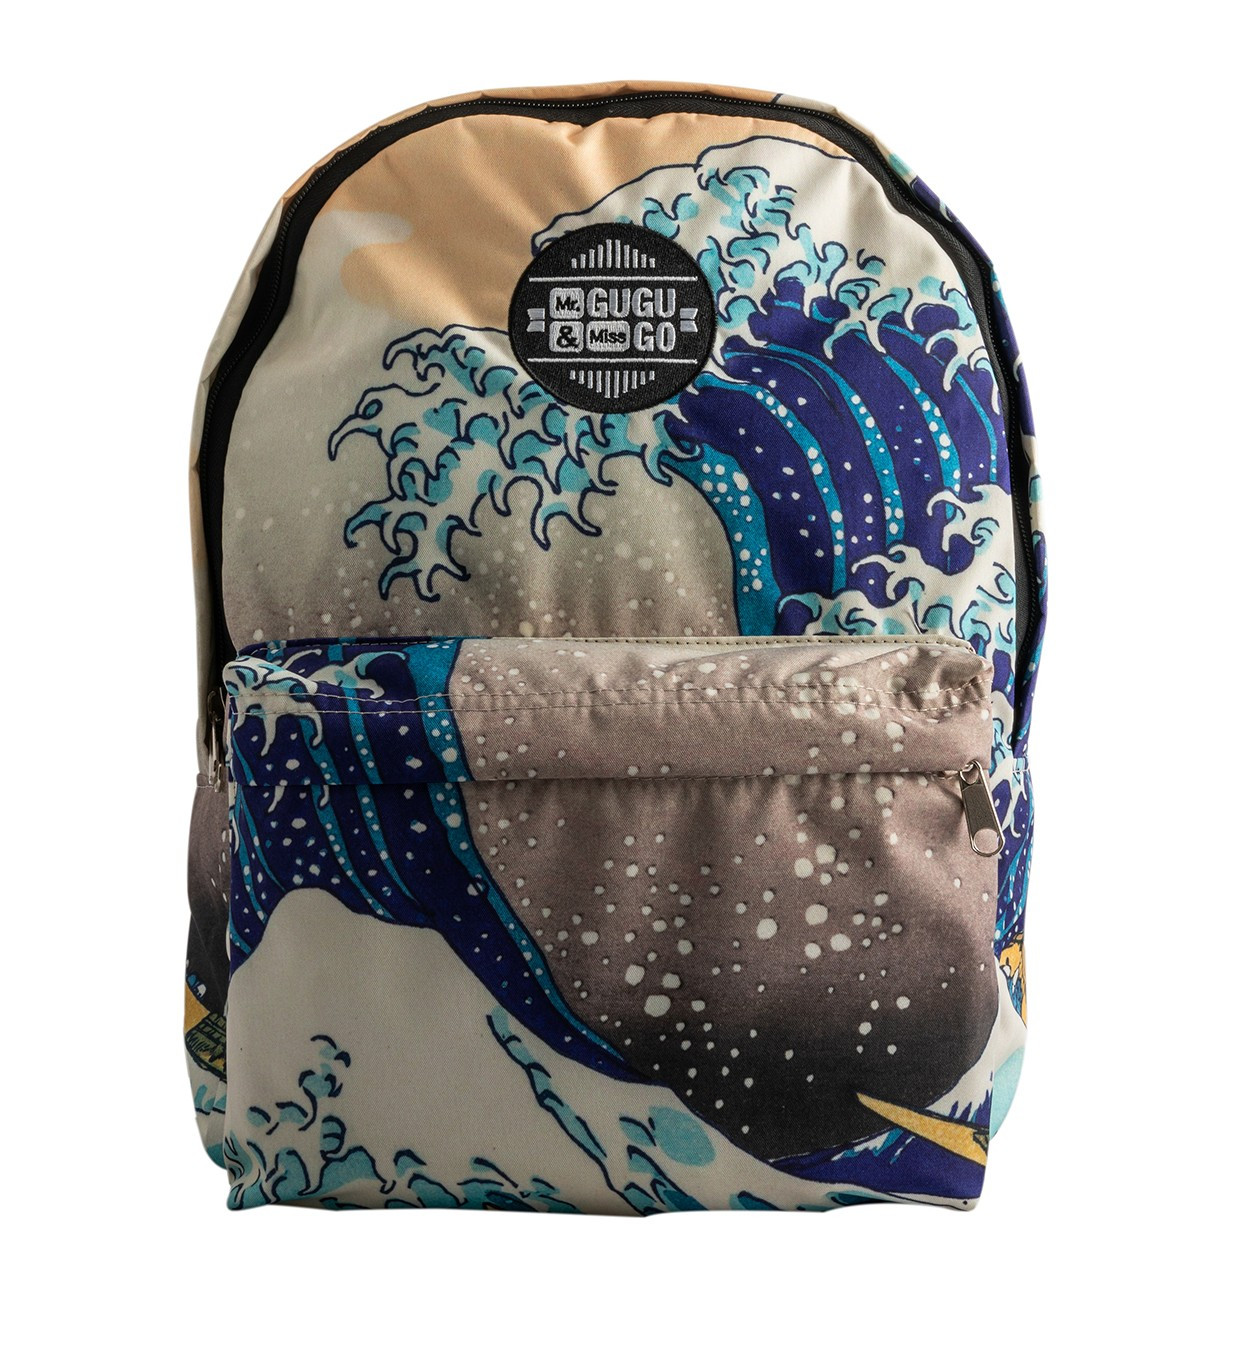 Mr. GUGU & Miss GO Unisex's Backpack BPS044